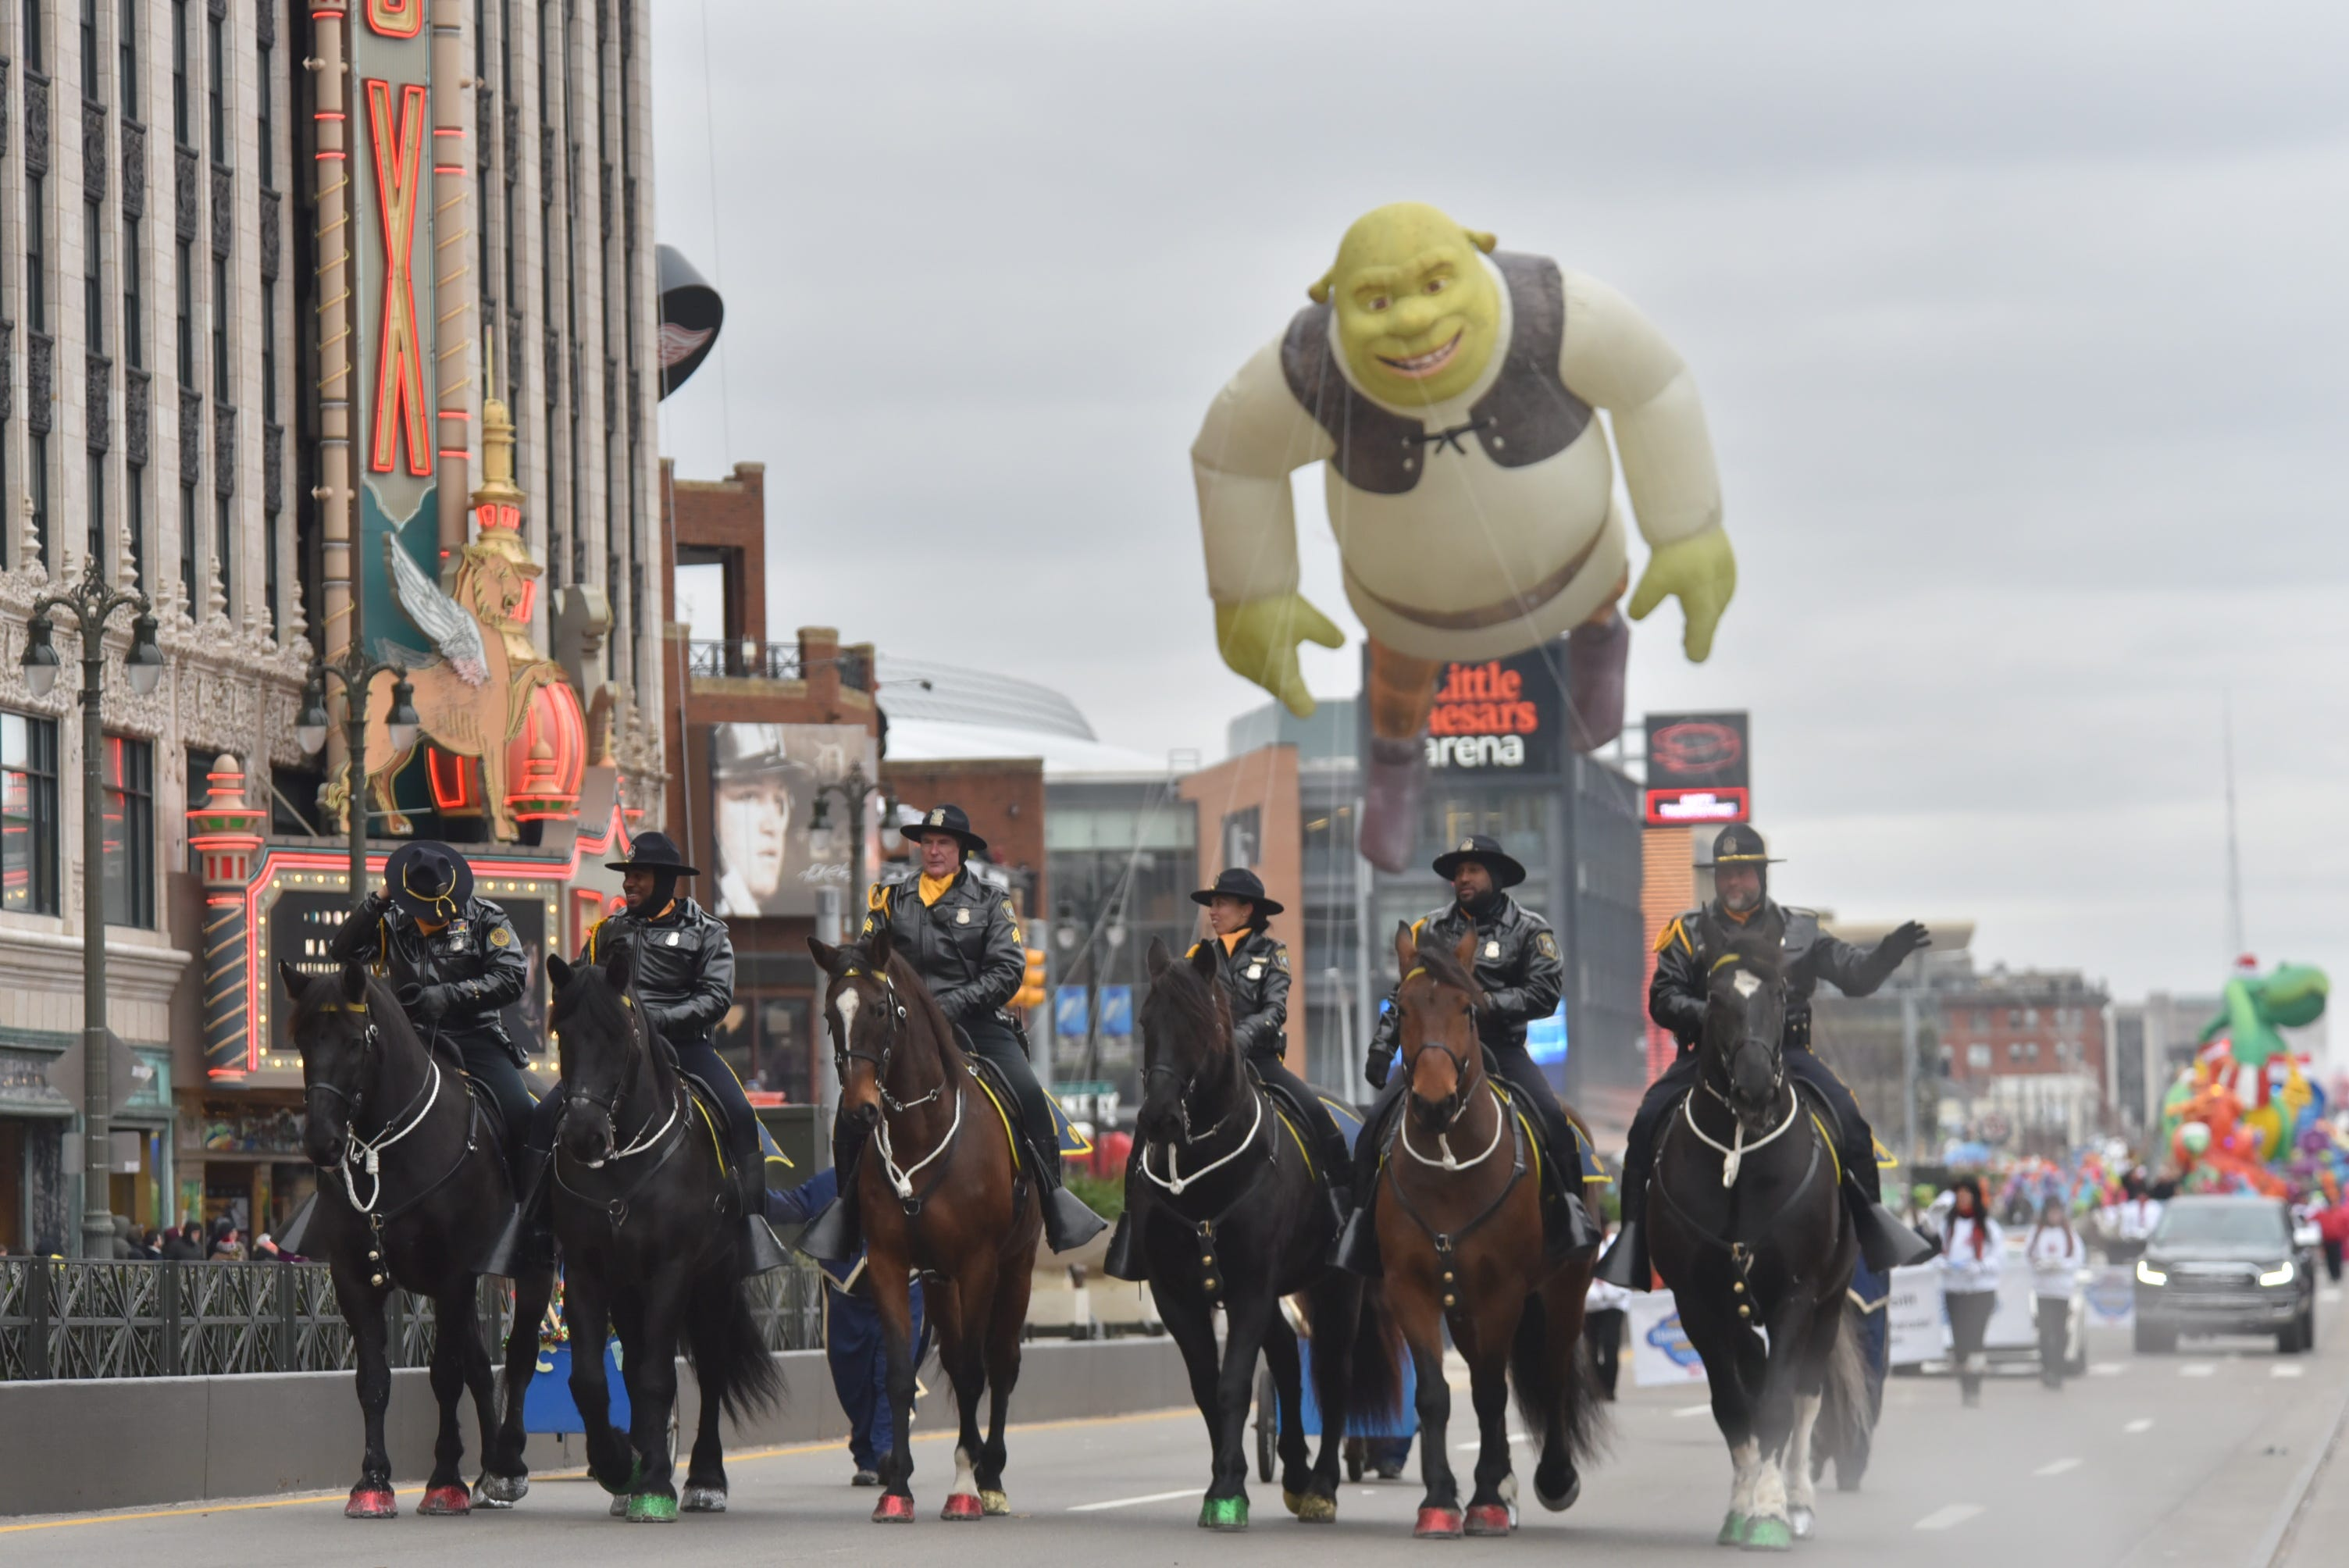 Members of the Detroit Police Mounted Unit head down the parade route.